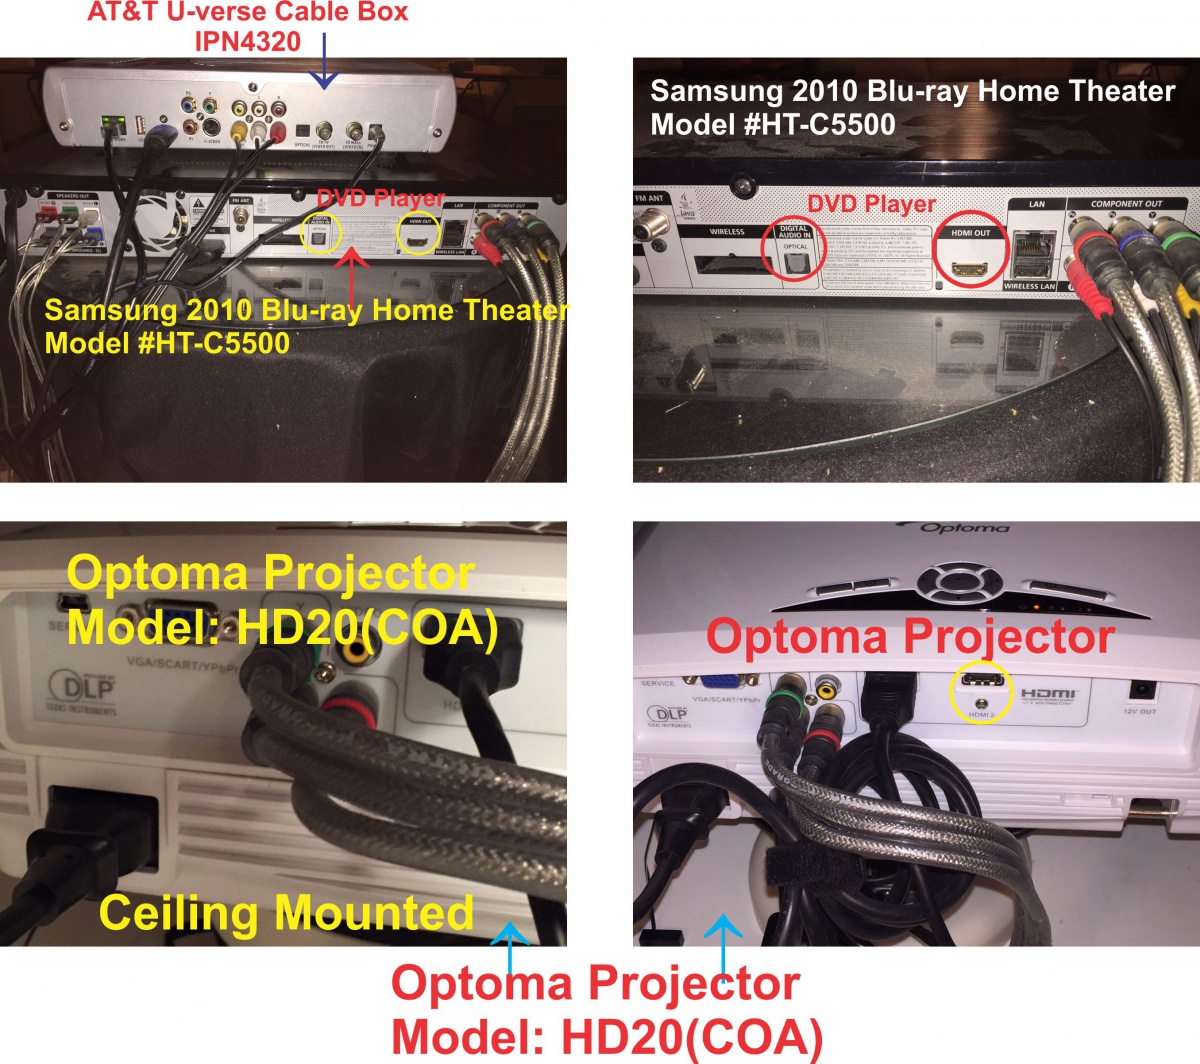 Connecting Firestick to DVD Player - Home Theater Forum and Systems ...